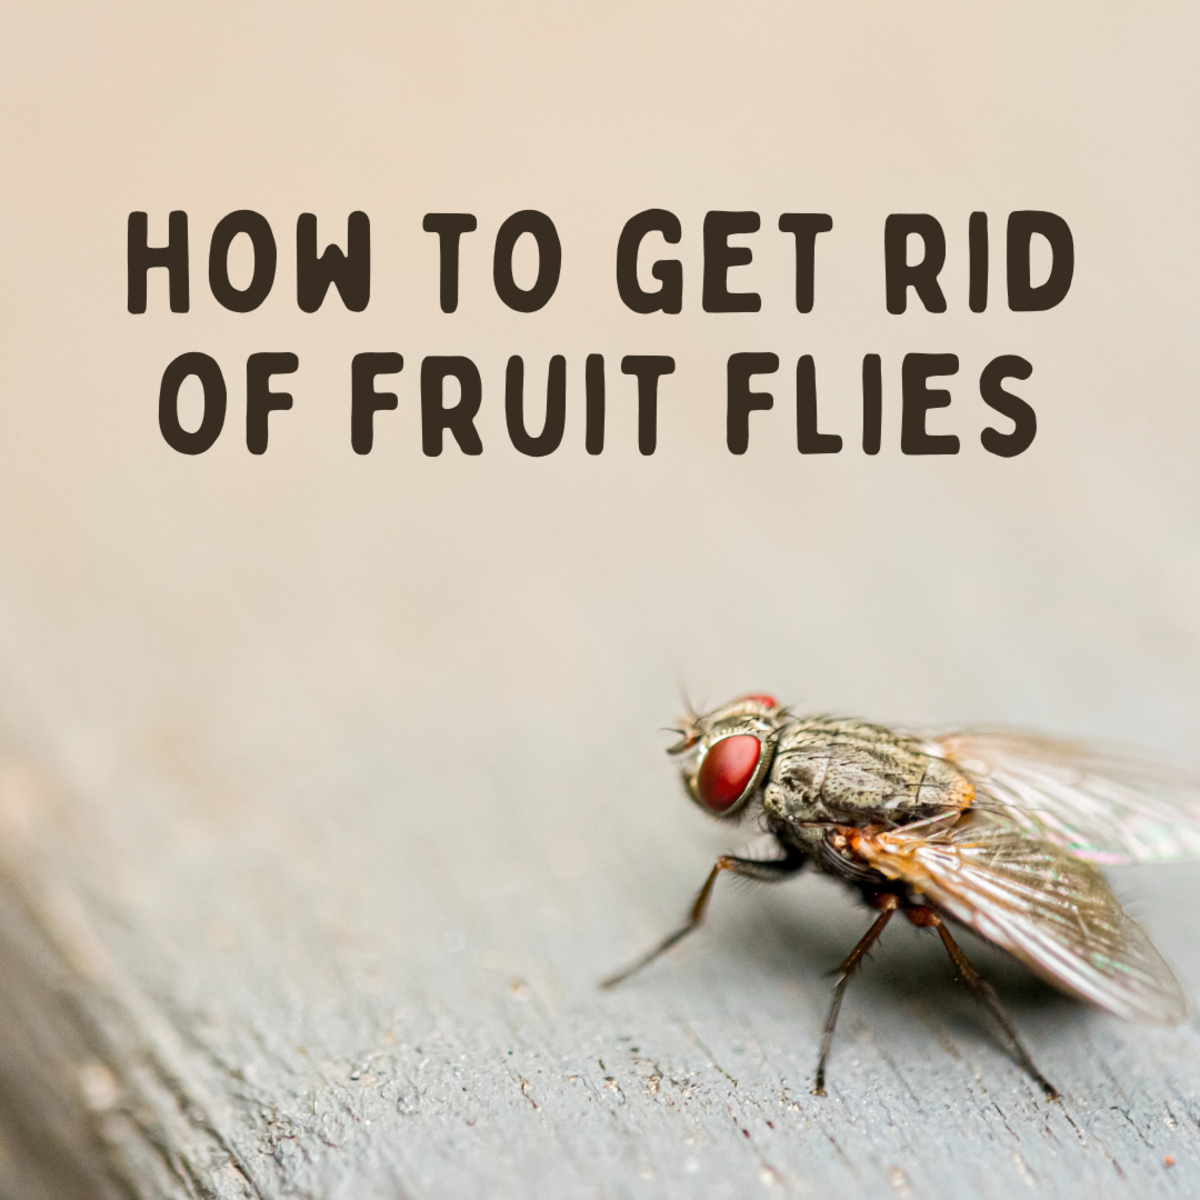 What to do if you have a fruit fly infestation